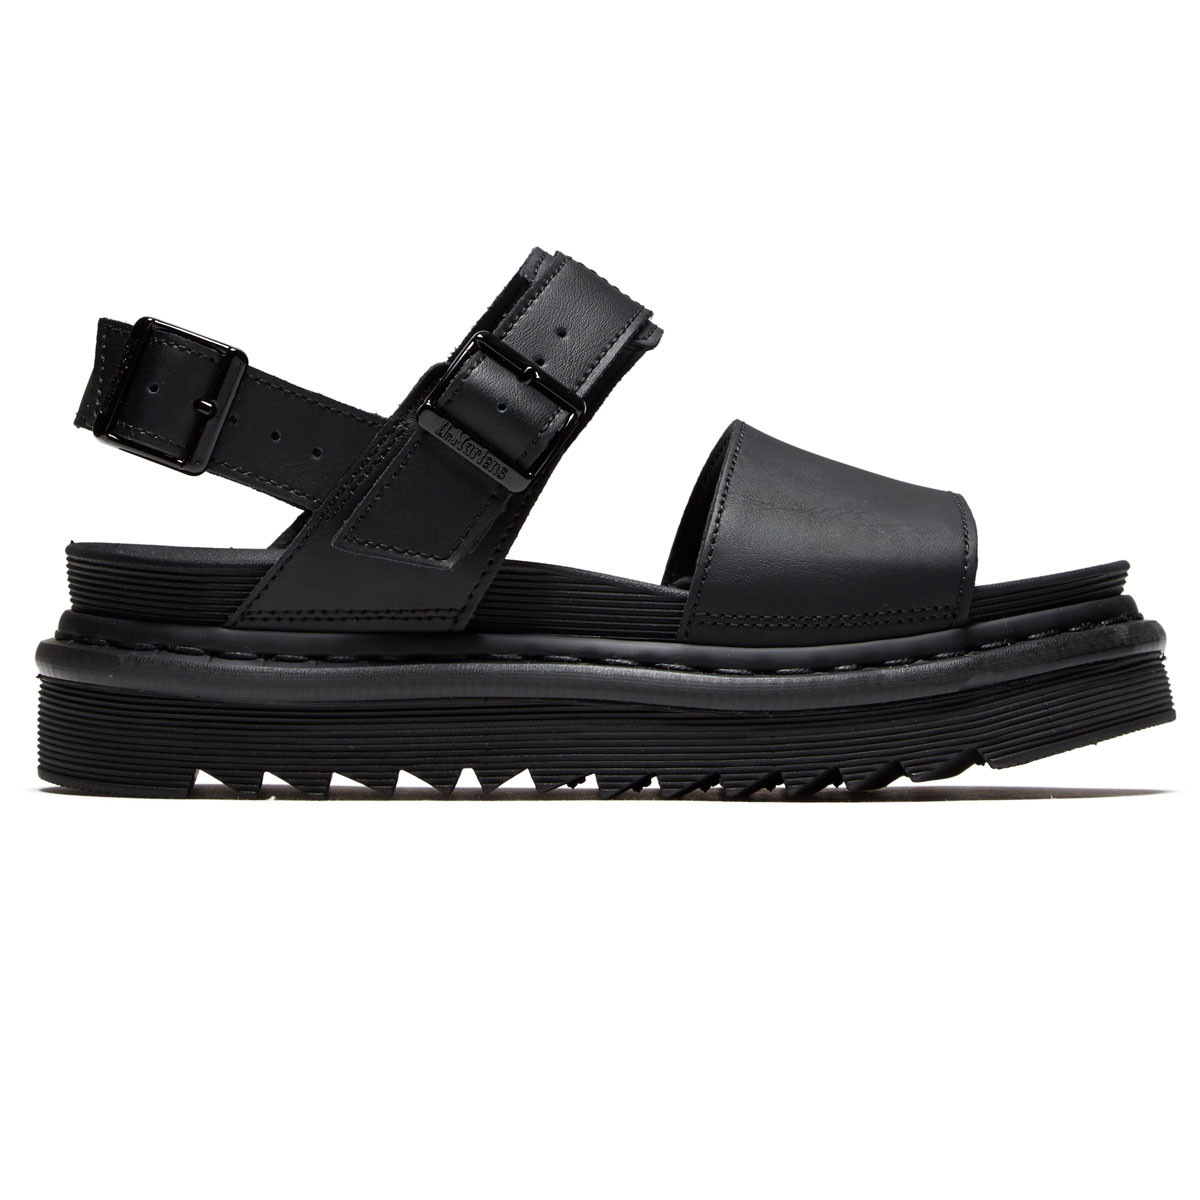 47384caa37a6 Dr. Martens Womens Voss Sandal Shoes - Black - 10.0